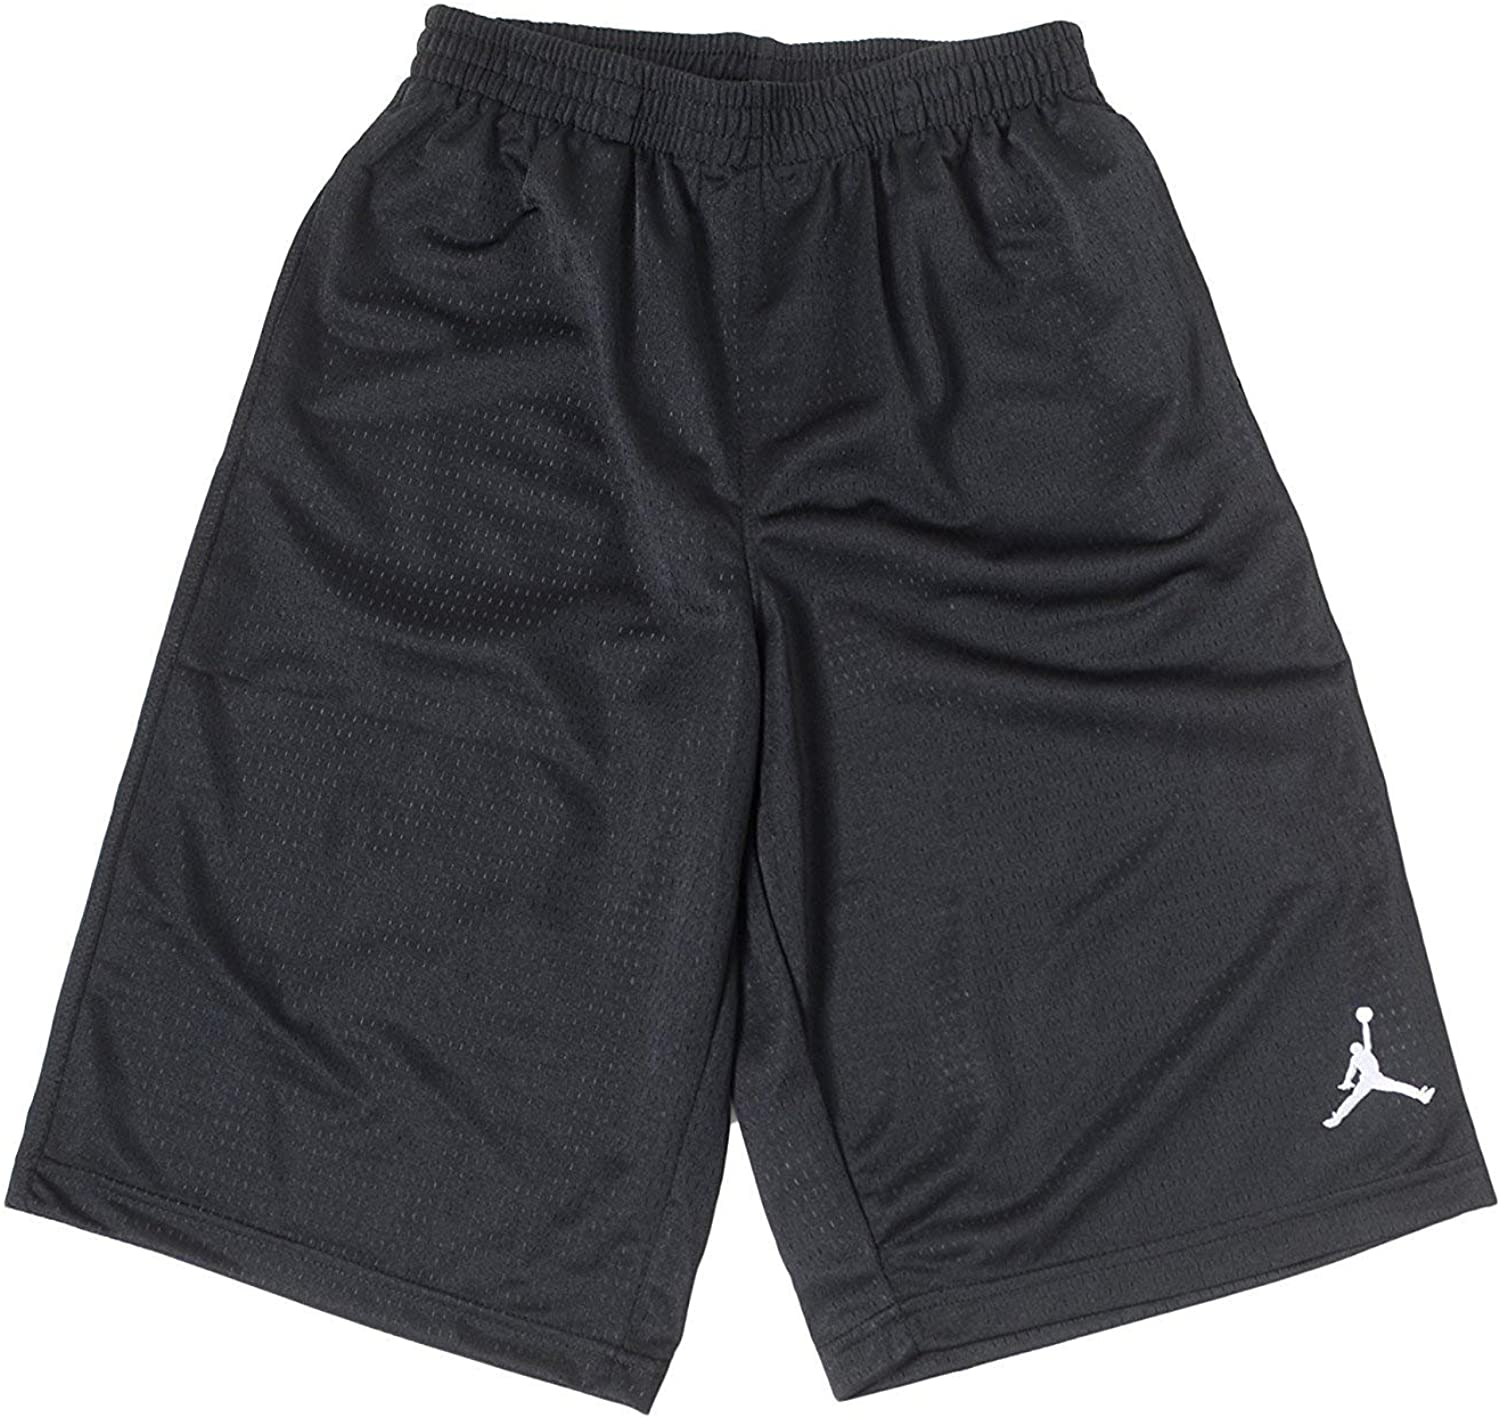 Nike Boys Air Jordan Mesh Athletic Basketball Shorts: Clothing